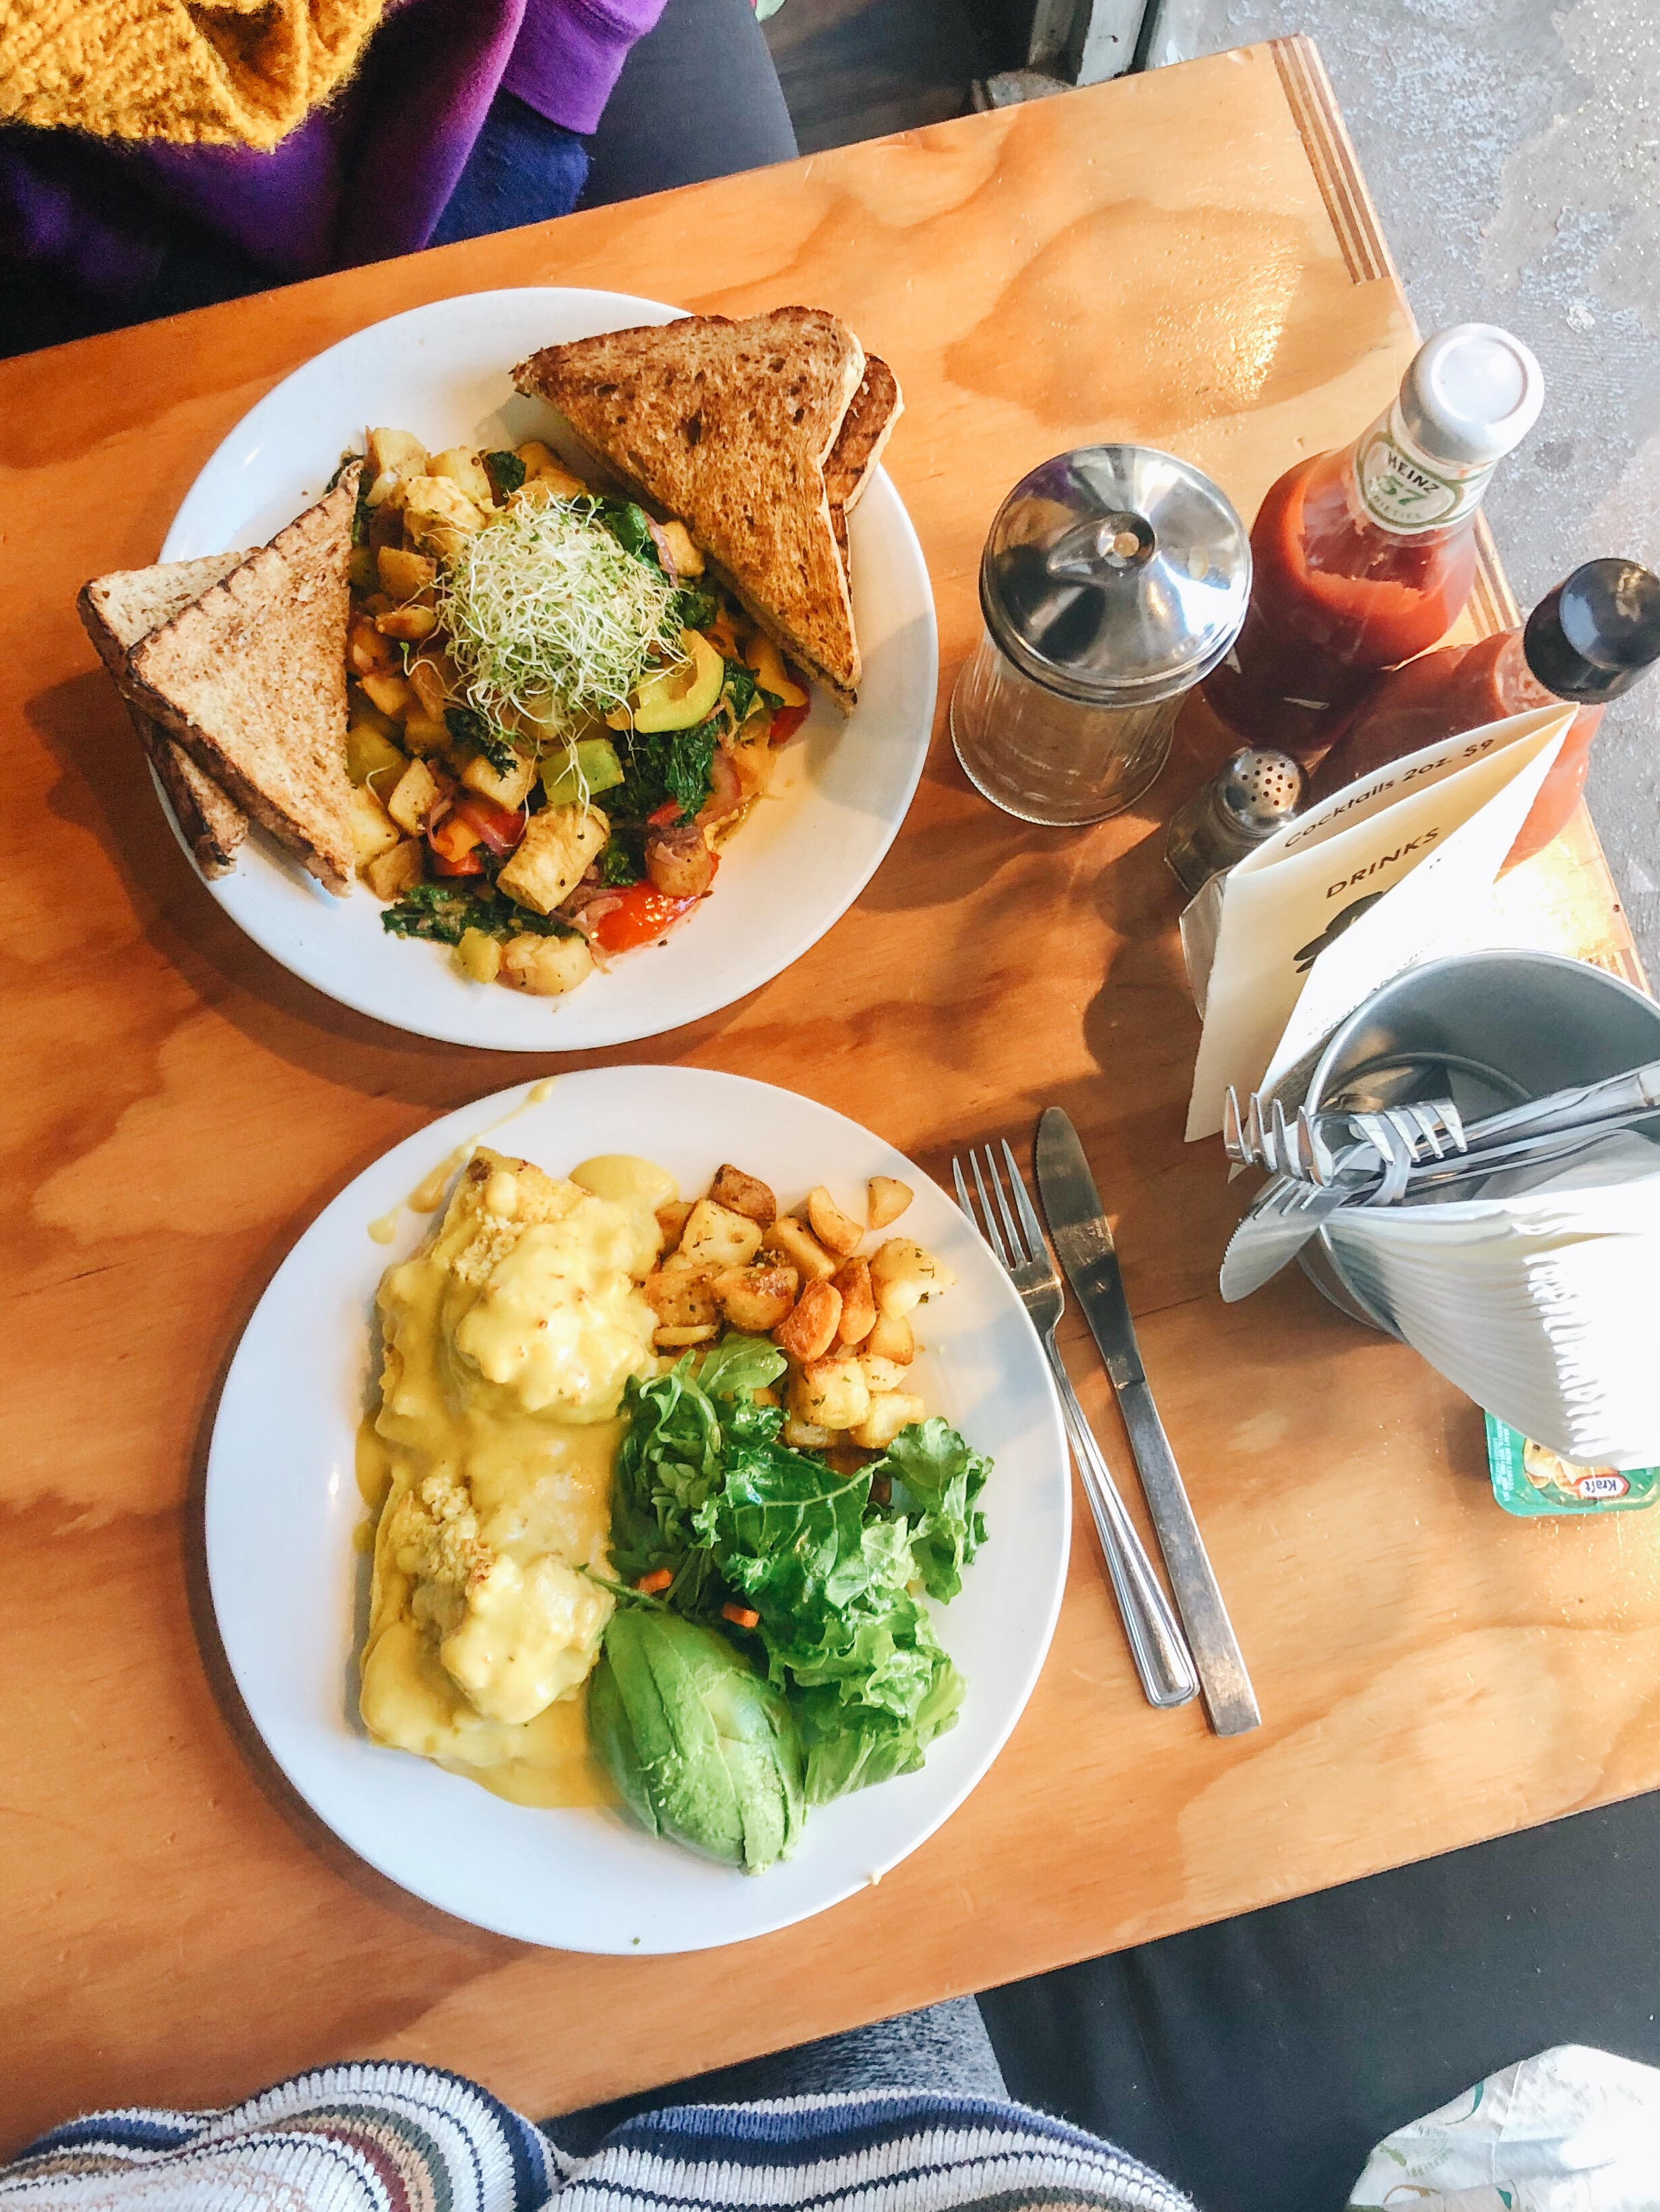 Thai Curry Hash and Vegan Benny (No Sausage, add Fried Polenta + add Avocado) from   WALLFLOWER DINER   in Mt Pleasant